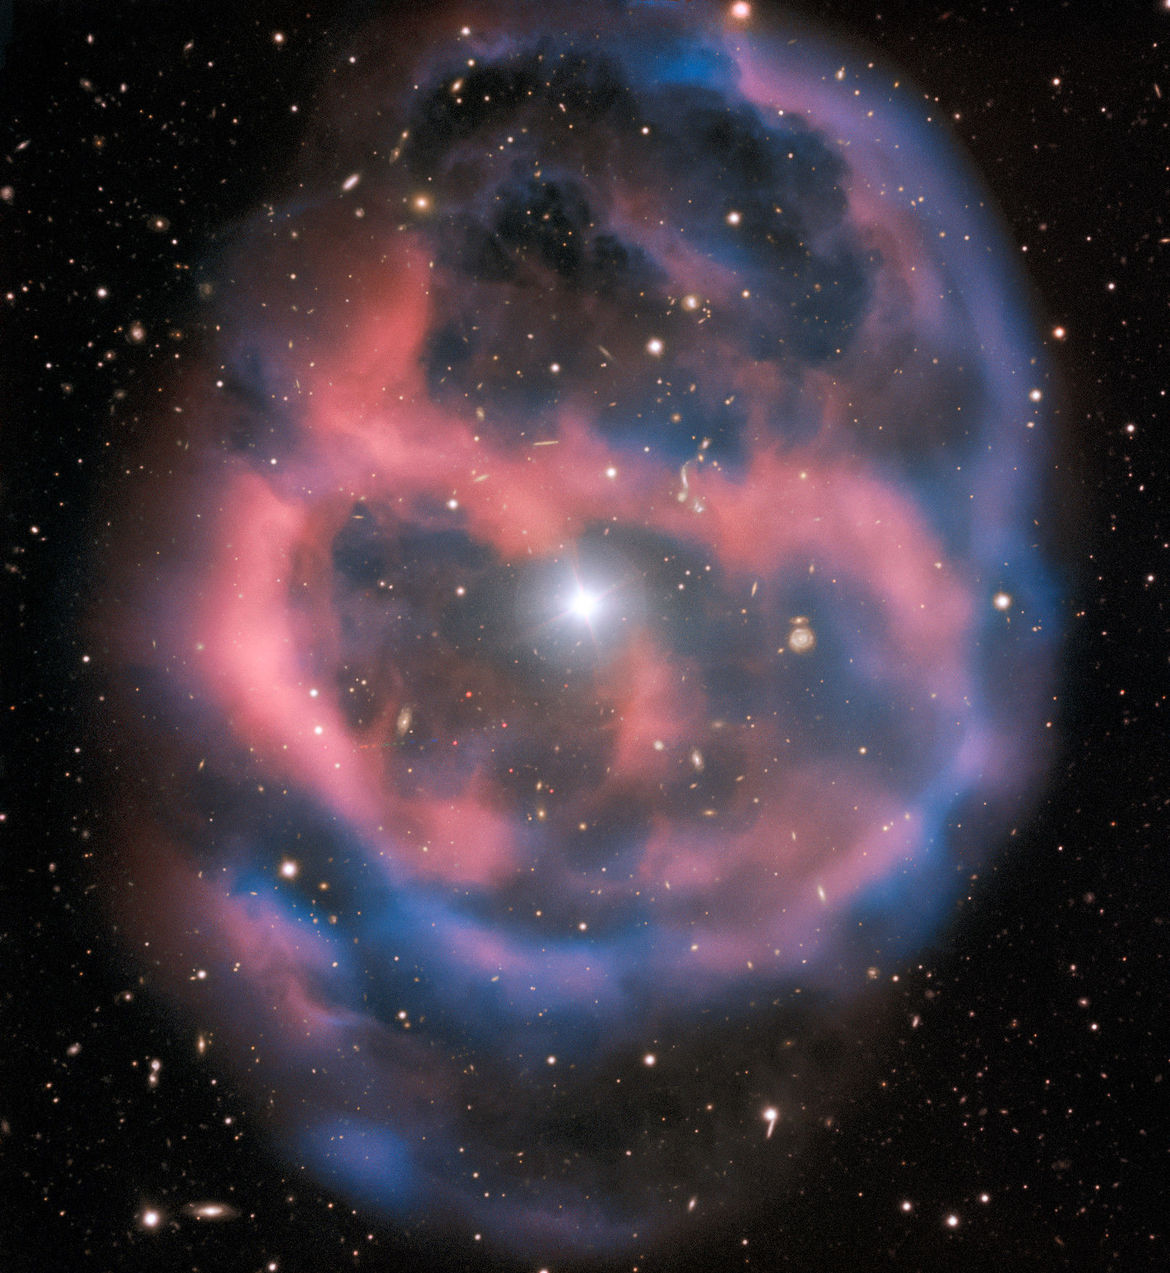 The planetary nebula Abell 36, the glowing gas thrown off by a nearby dying star. Credit: ESO